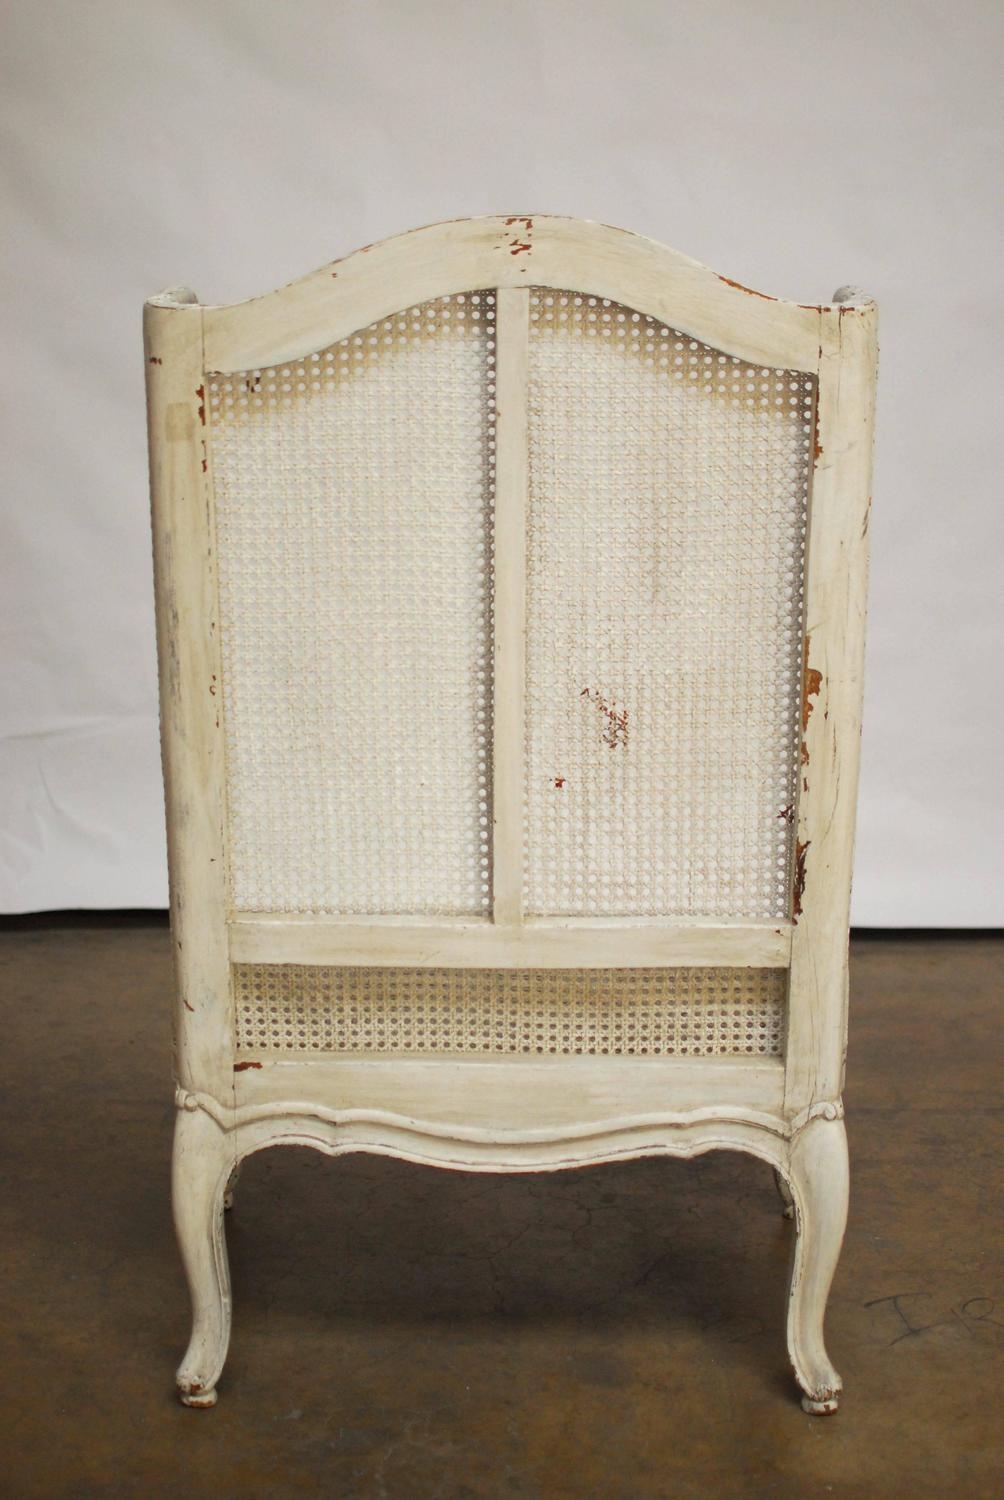 pads for chair legs portable dental india louis xv cane wingback bergere sale at 1stdibs